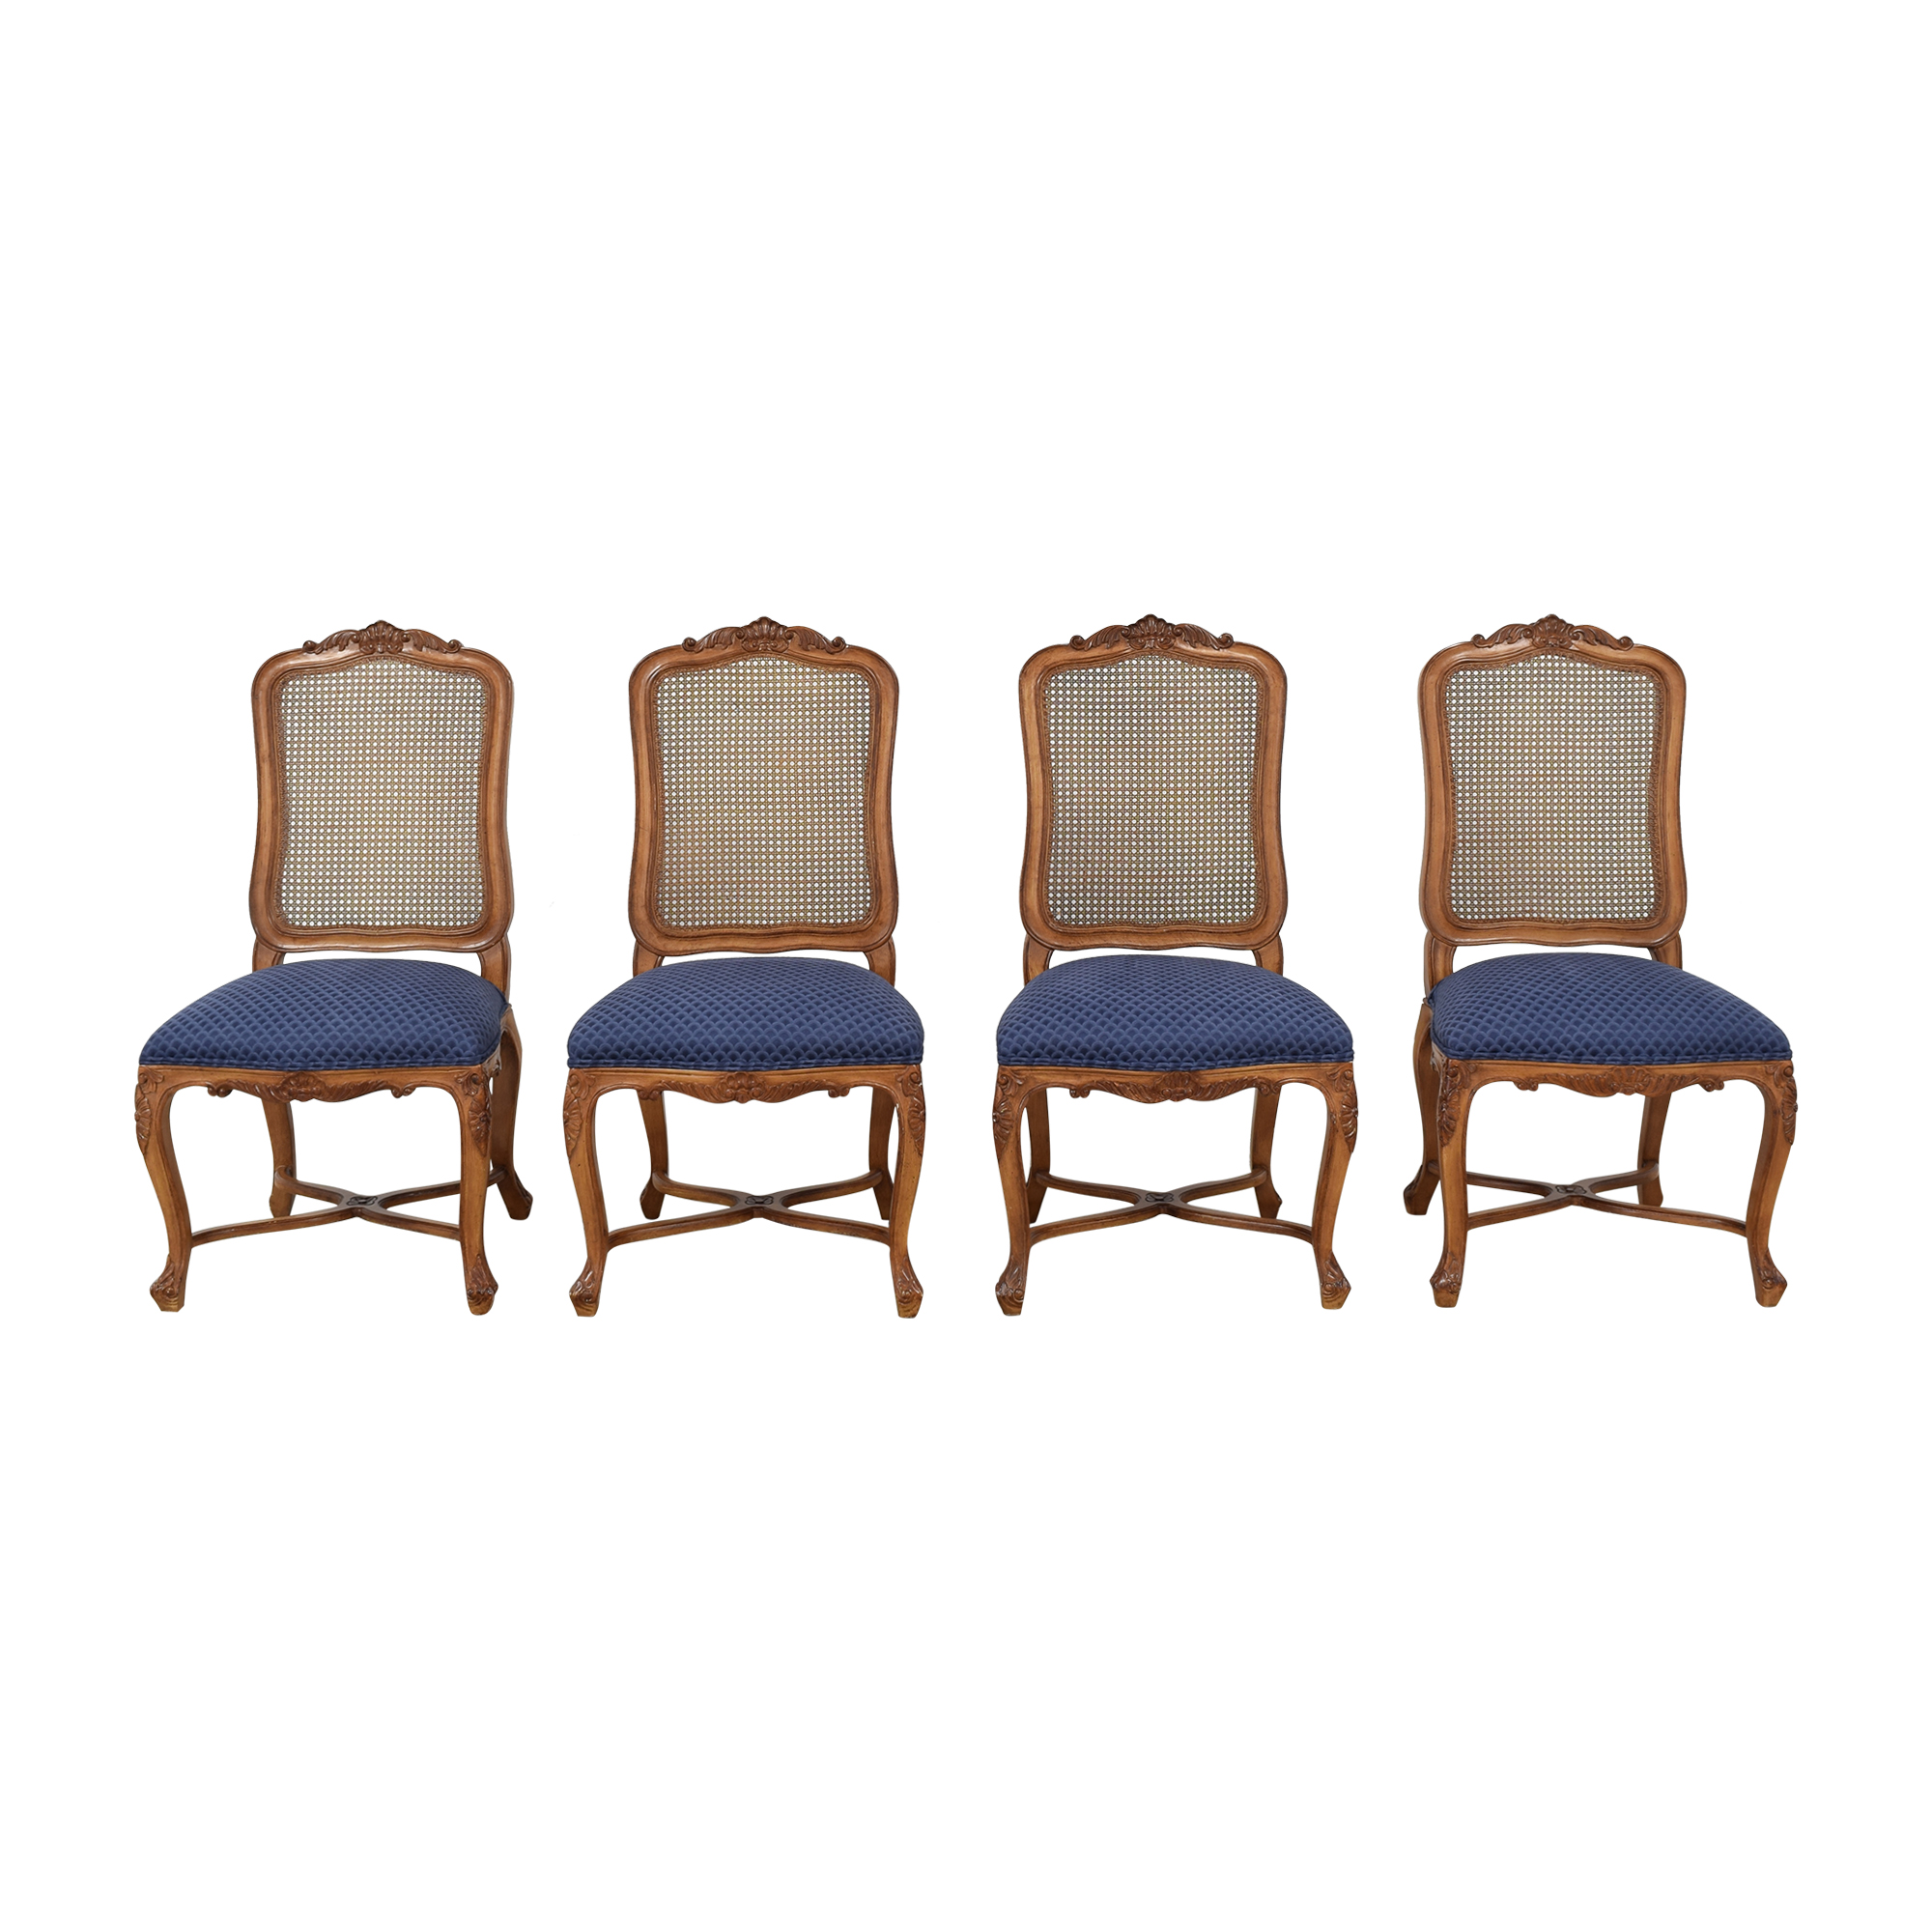 Andre Originals Andre Originals Dining Side Chairs coupon